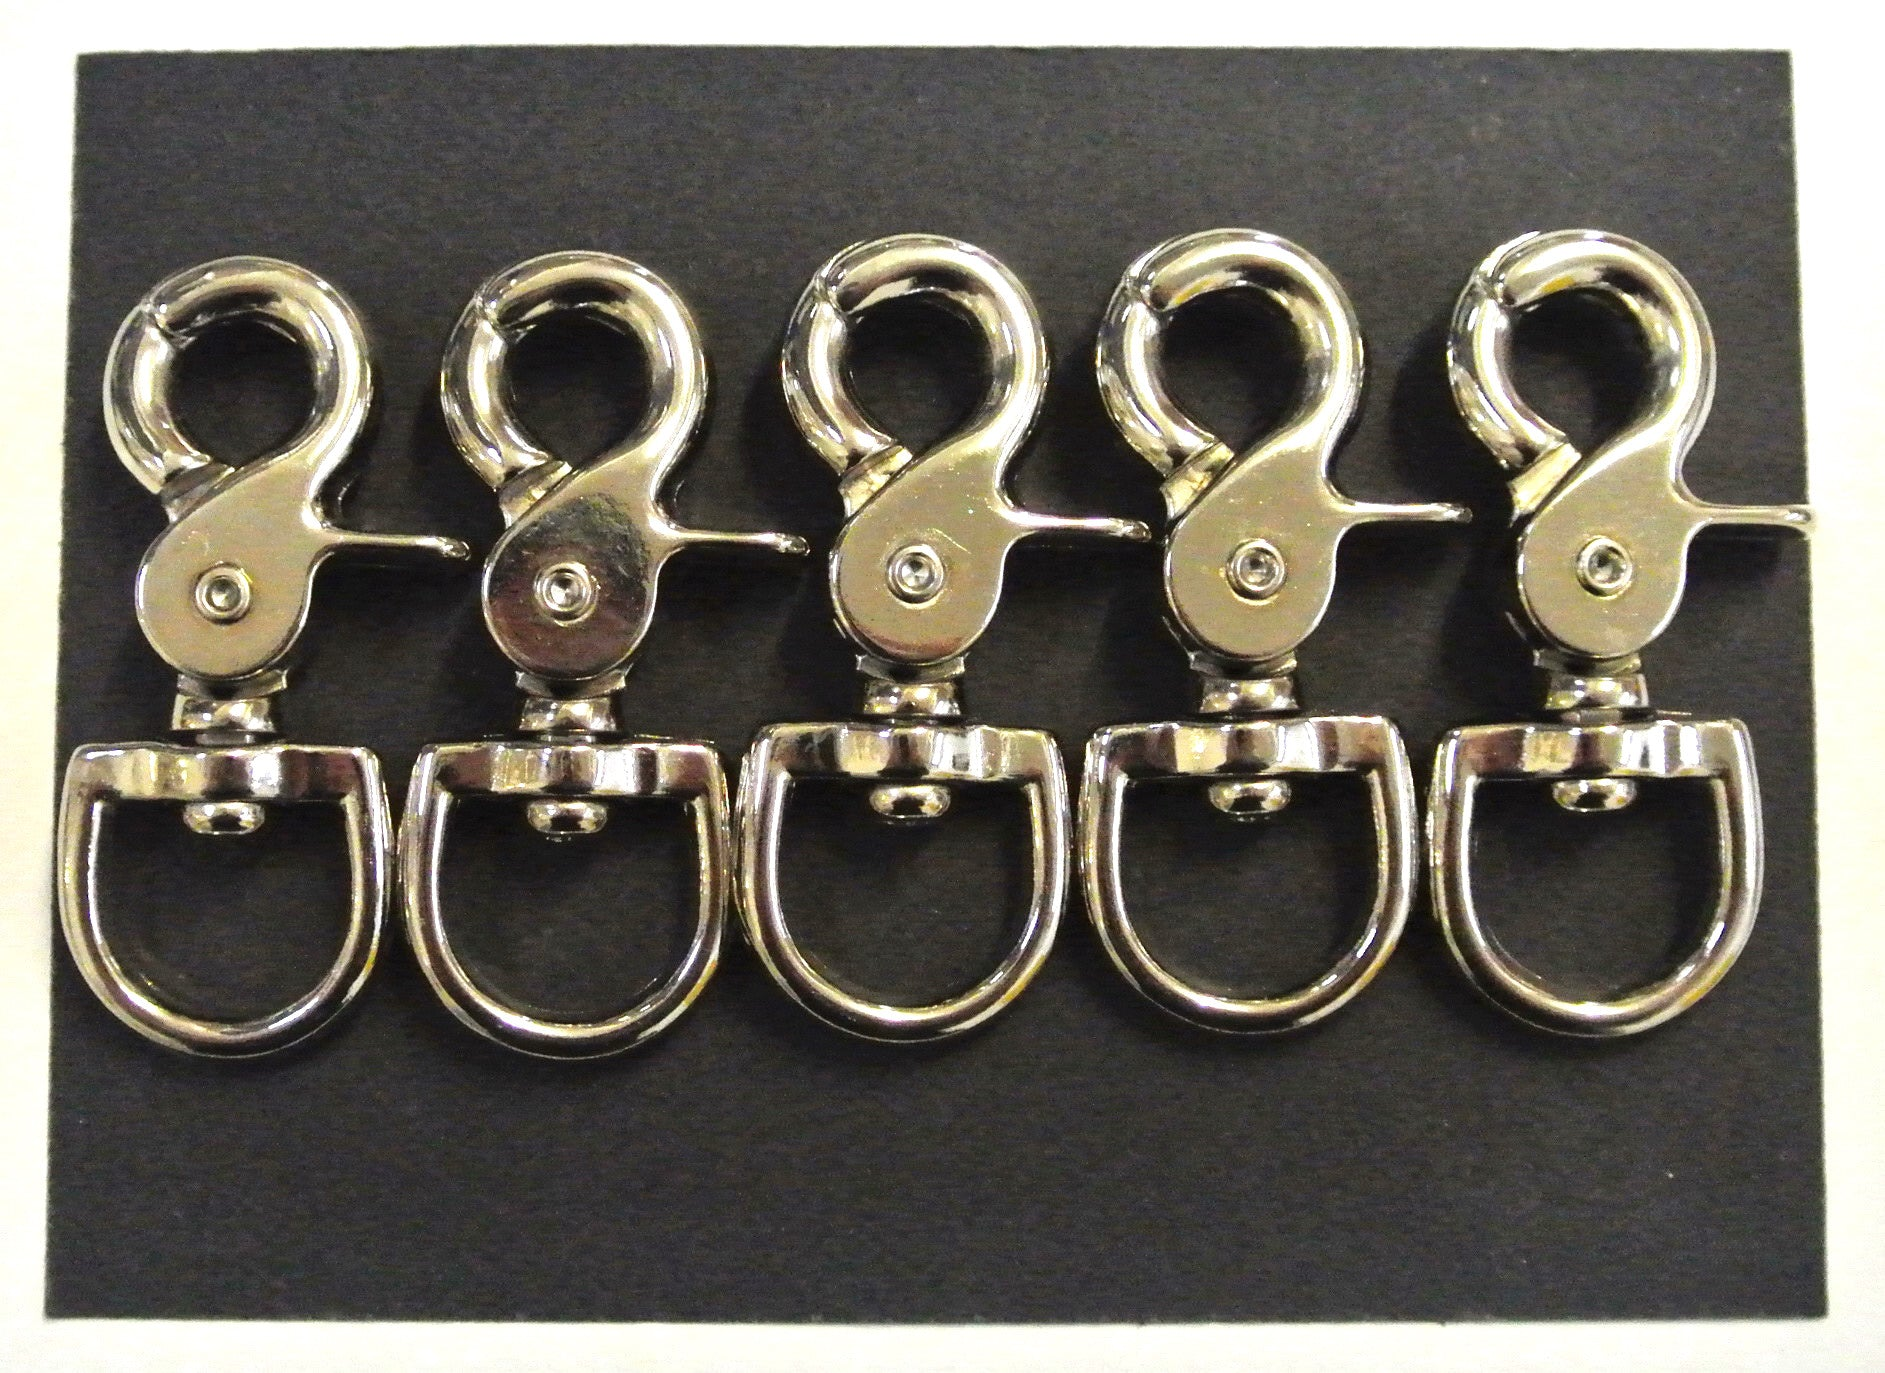 16mm Scissor Trigger Clips//Hooks,Clasp,Swivel,Nickel Plated For Dog Leads,Straps